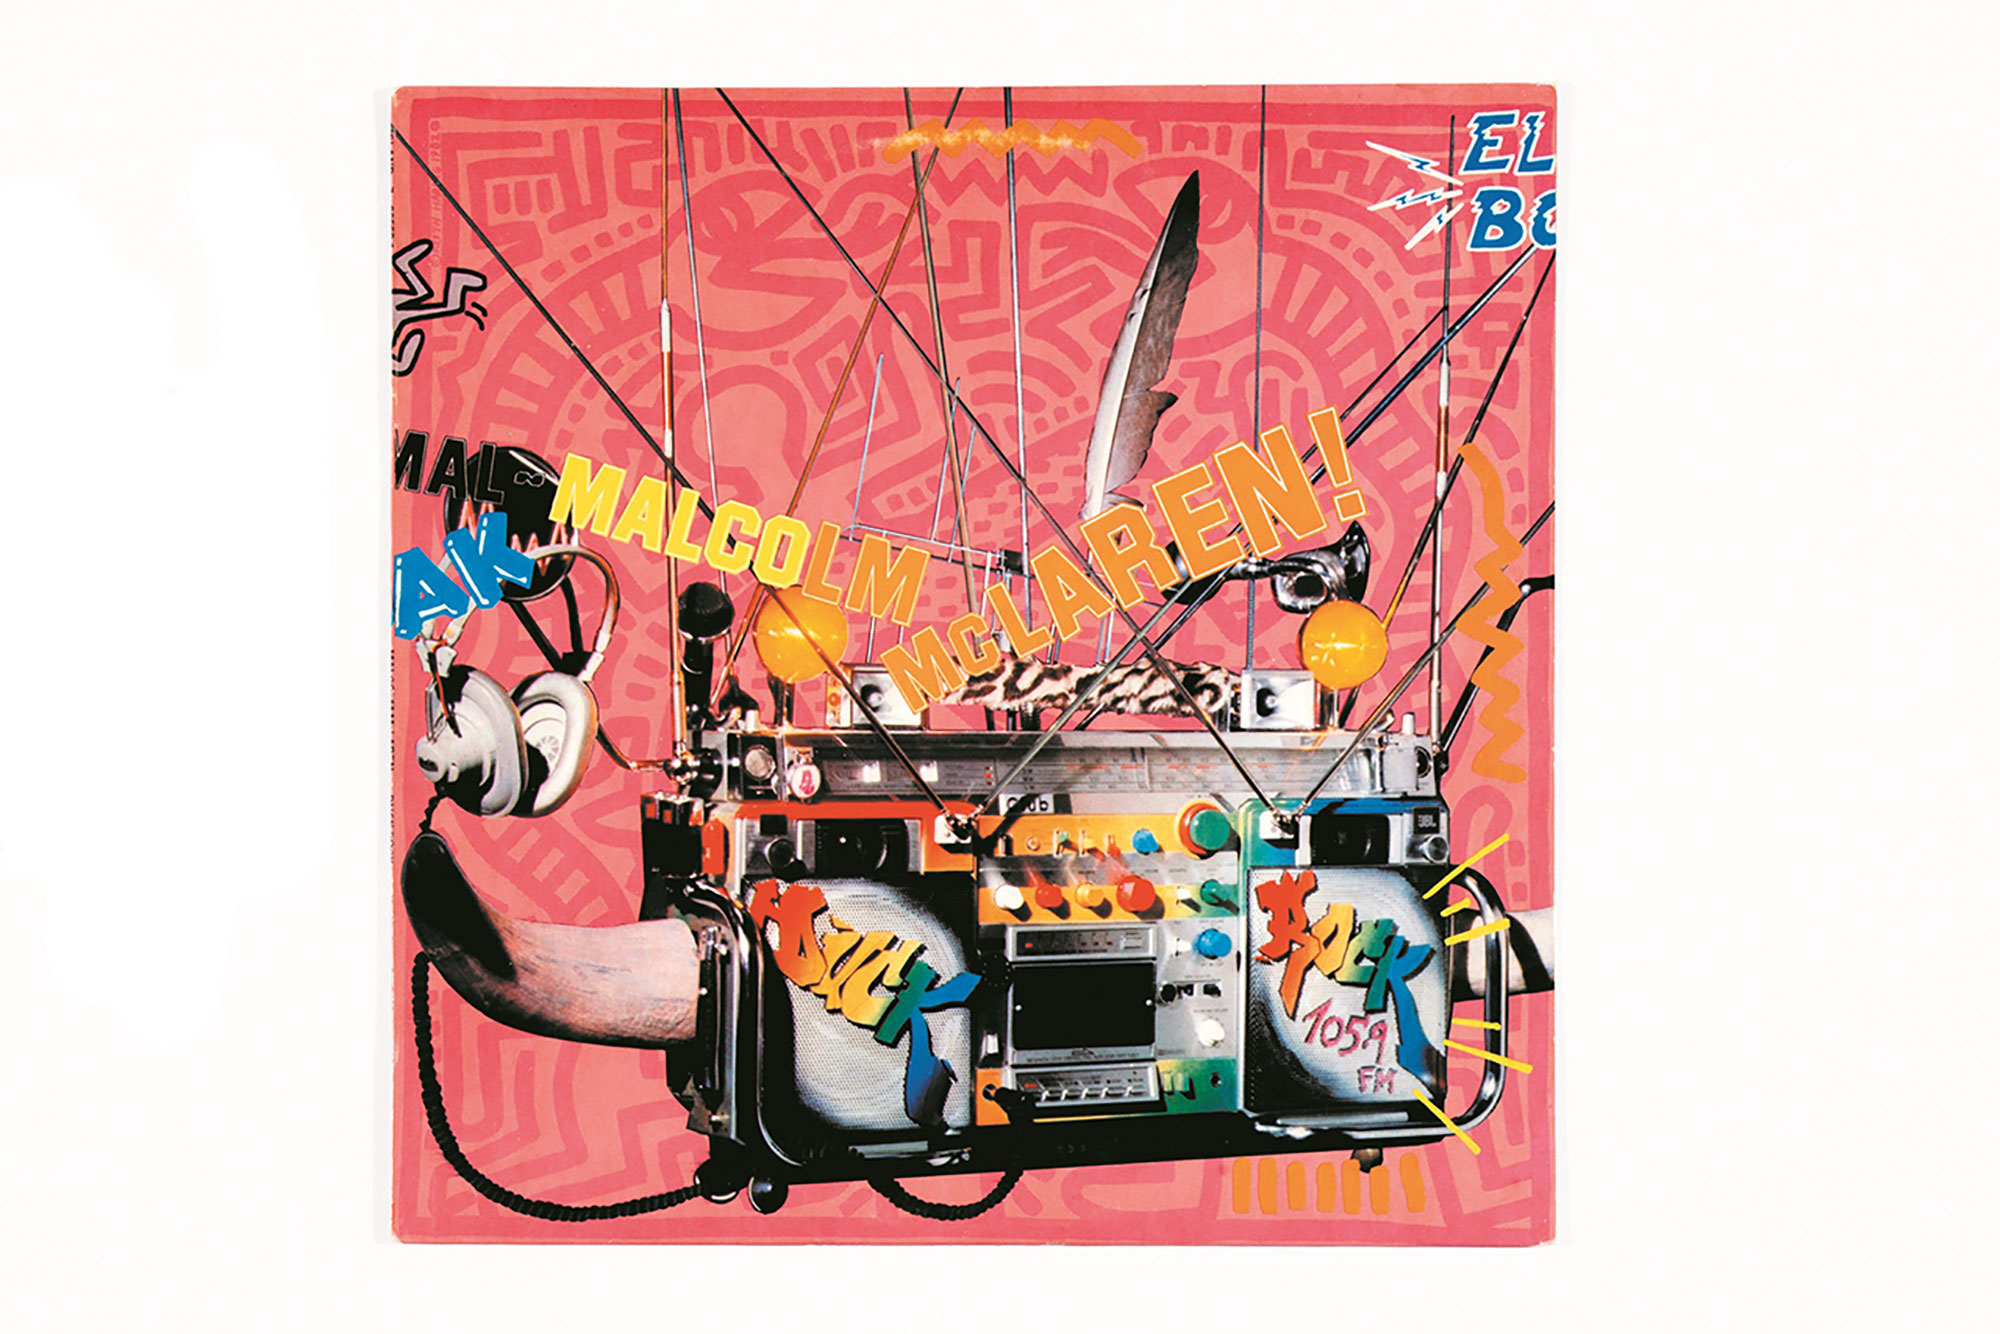 レコード・カバー Duck Rock, Malcolm McLaren, 1983